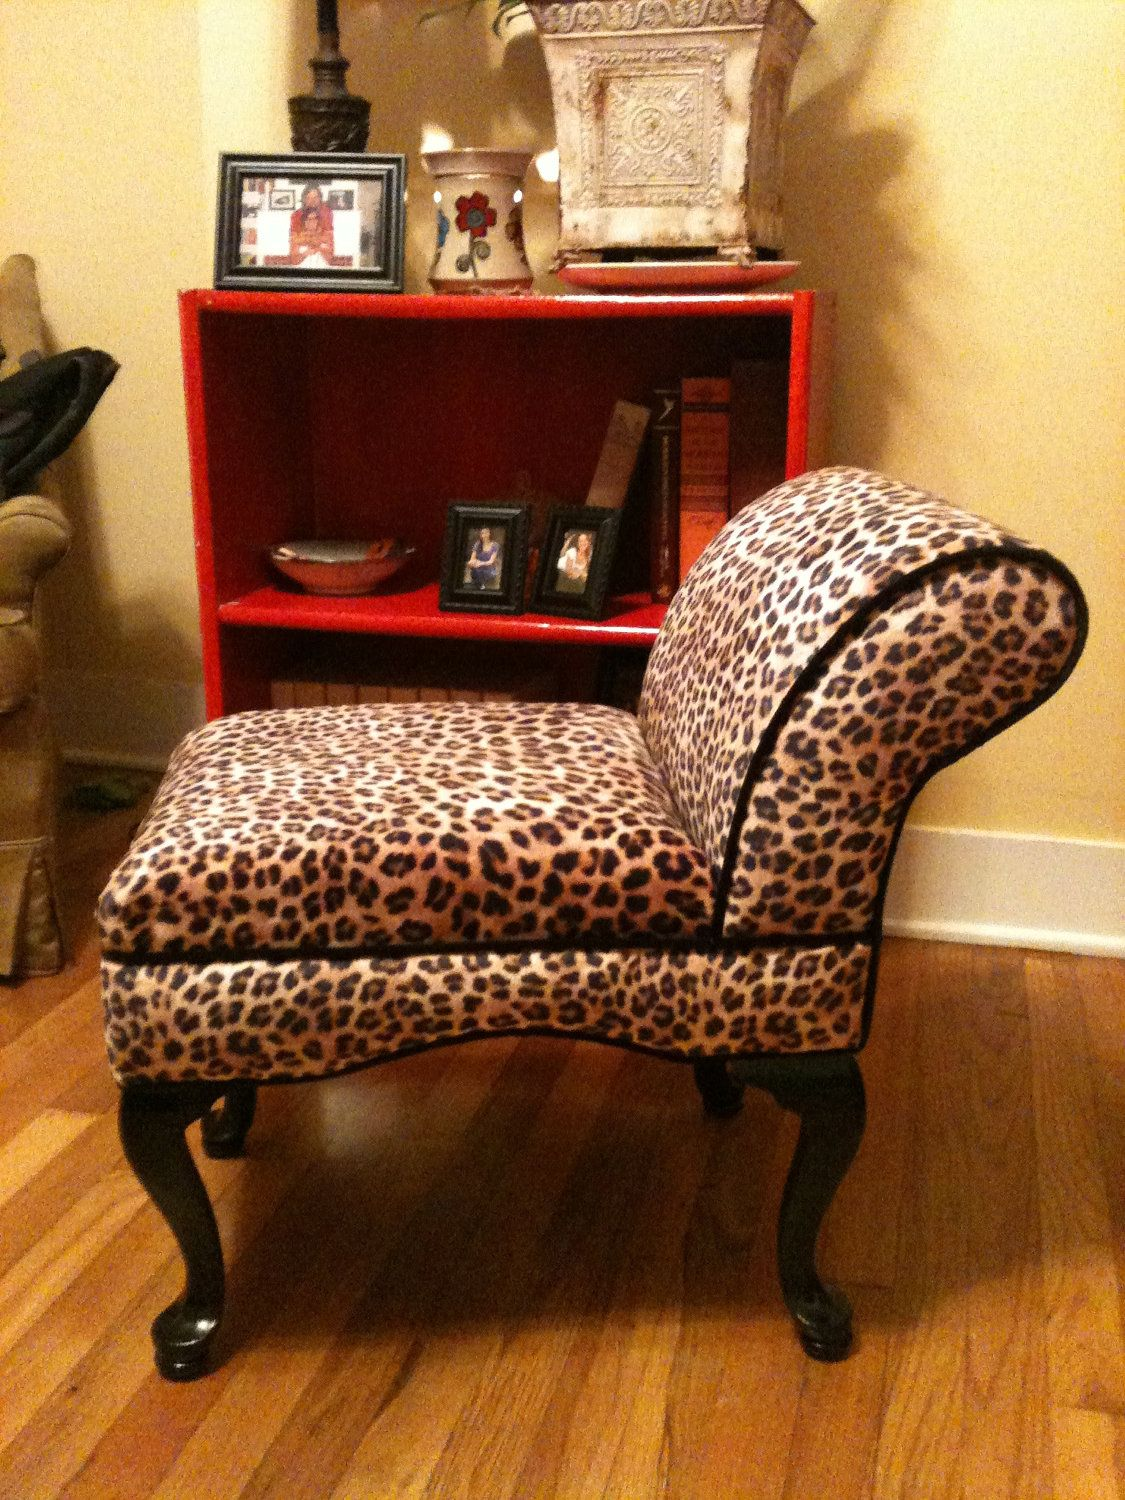 Vanity Chair Leopard. $99.00, via Etsy. | Animal print ... on leopard print living room furniture, leopard chair, beauty furniture home, paisley furniture home, leopard reclining sofa, leopard print furniture and accessories, zebra furniture home, leopard print retro furniture, animal print for the home, beach furniture home,